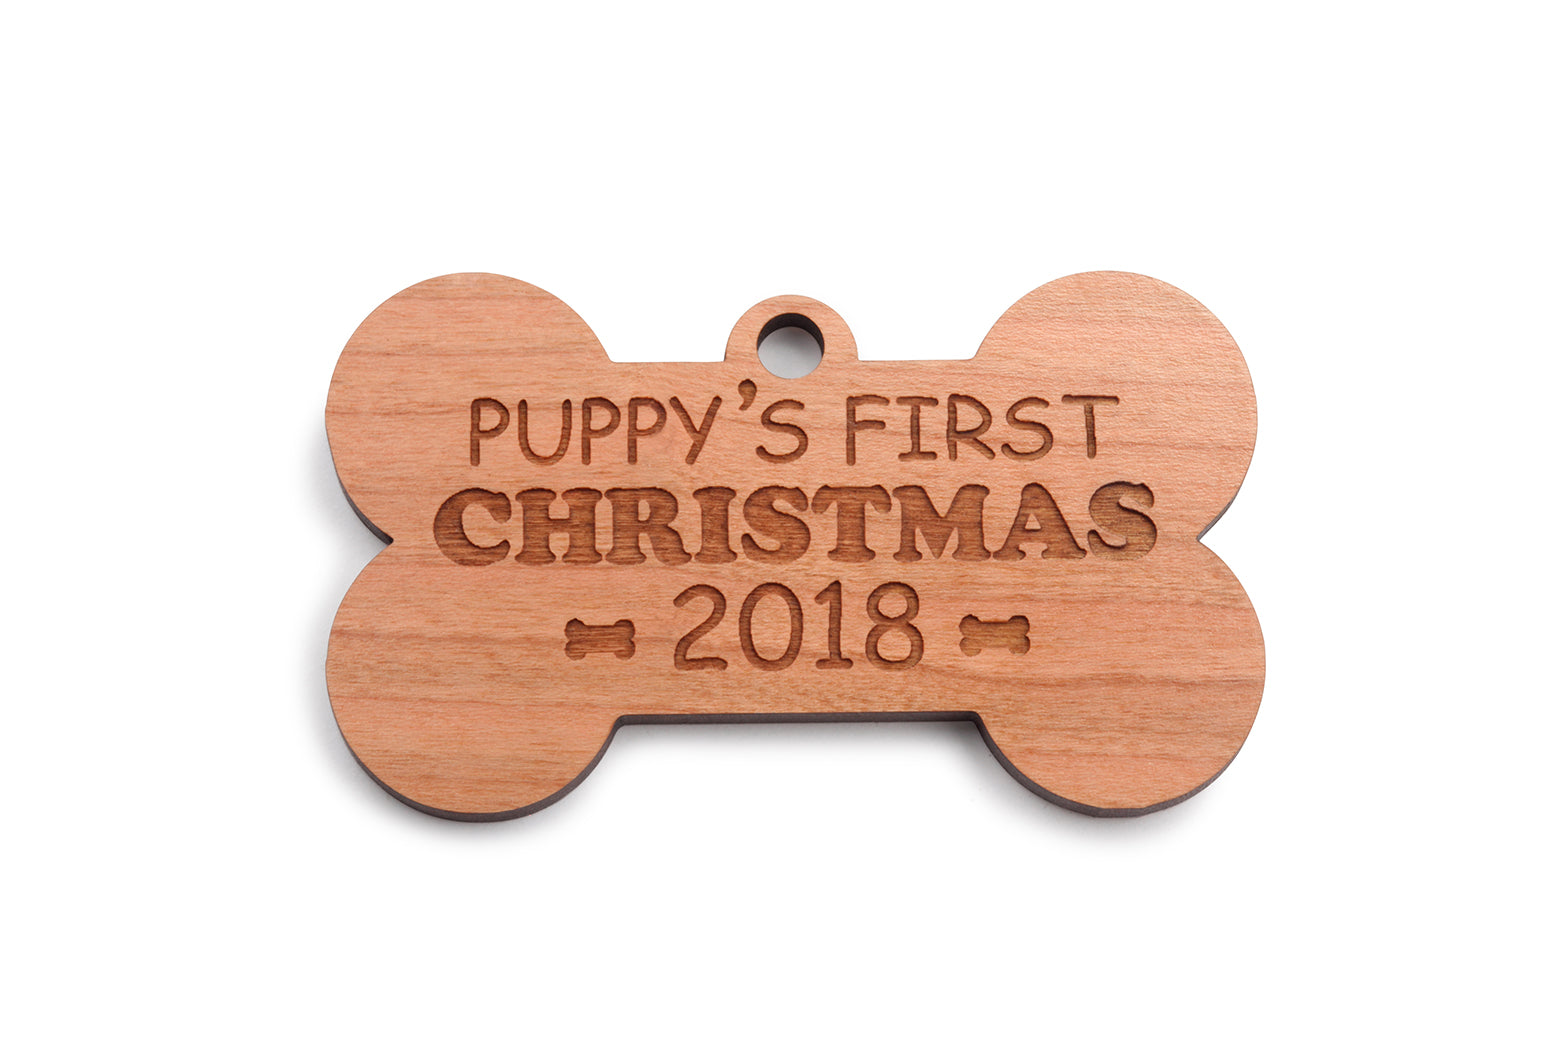 Dog lovers xmas gifts for dads